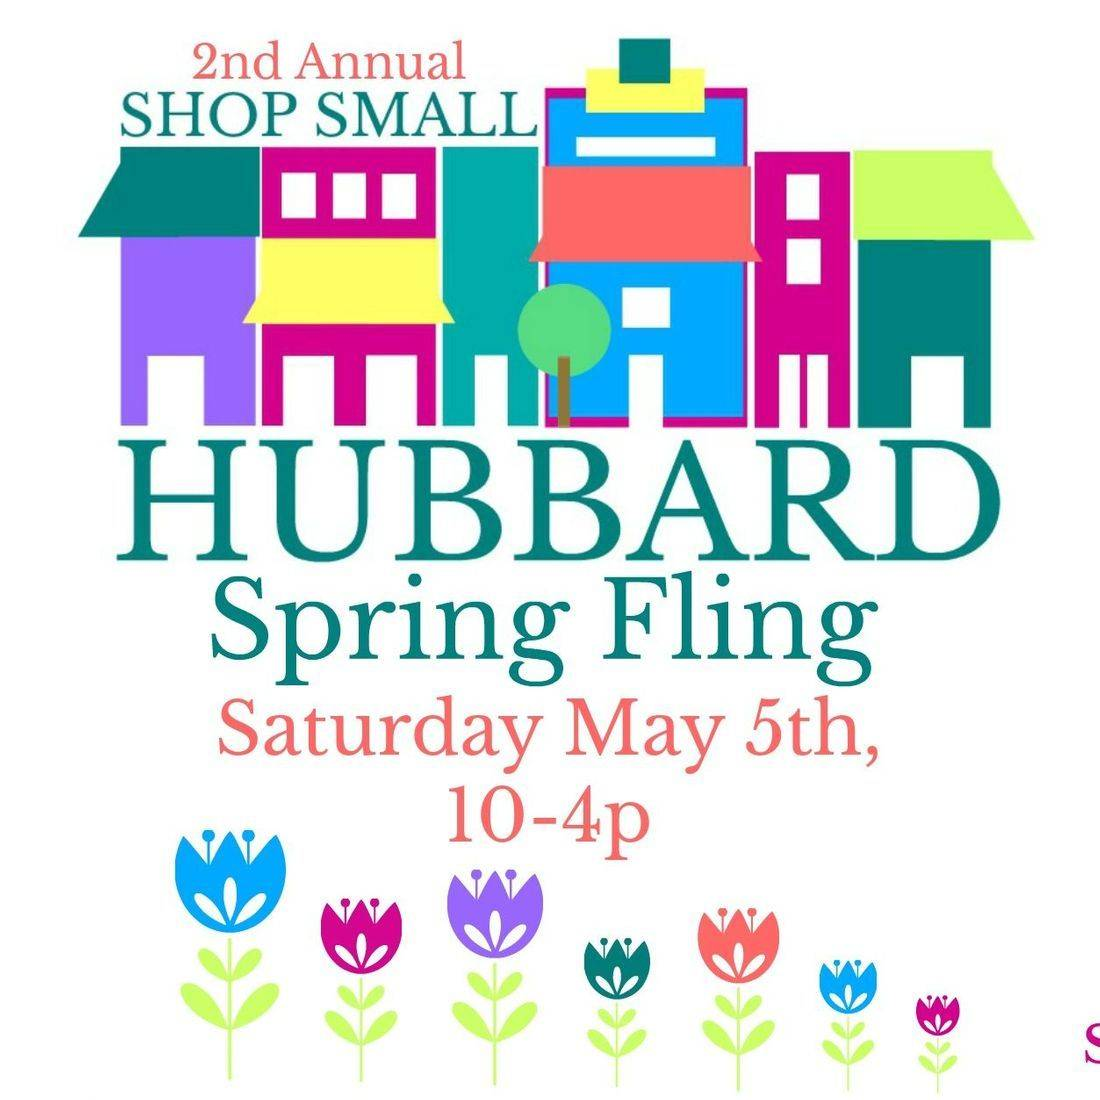 We are participating in Hubbard Shop Small Spring Fling